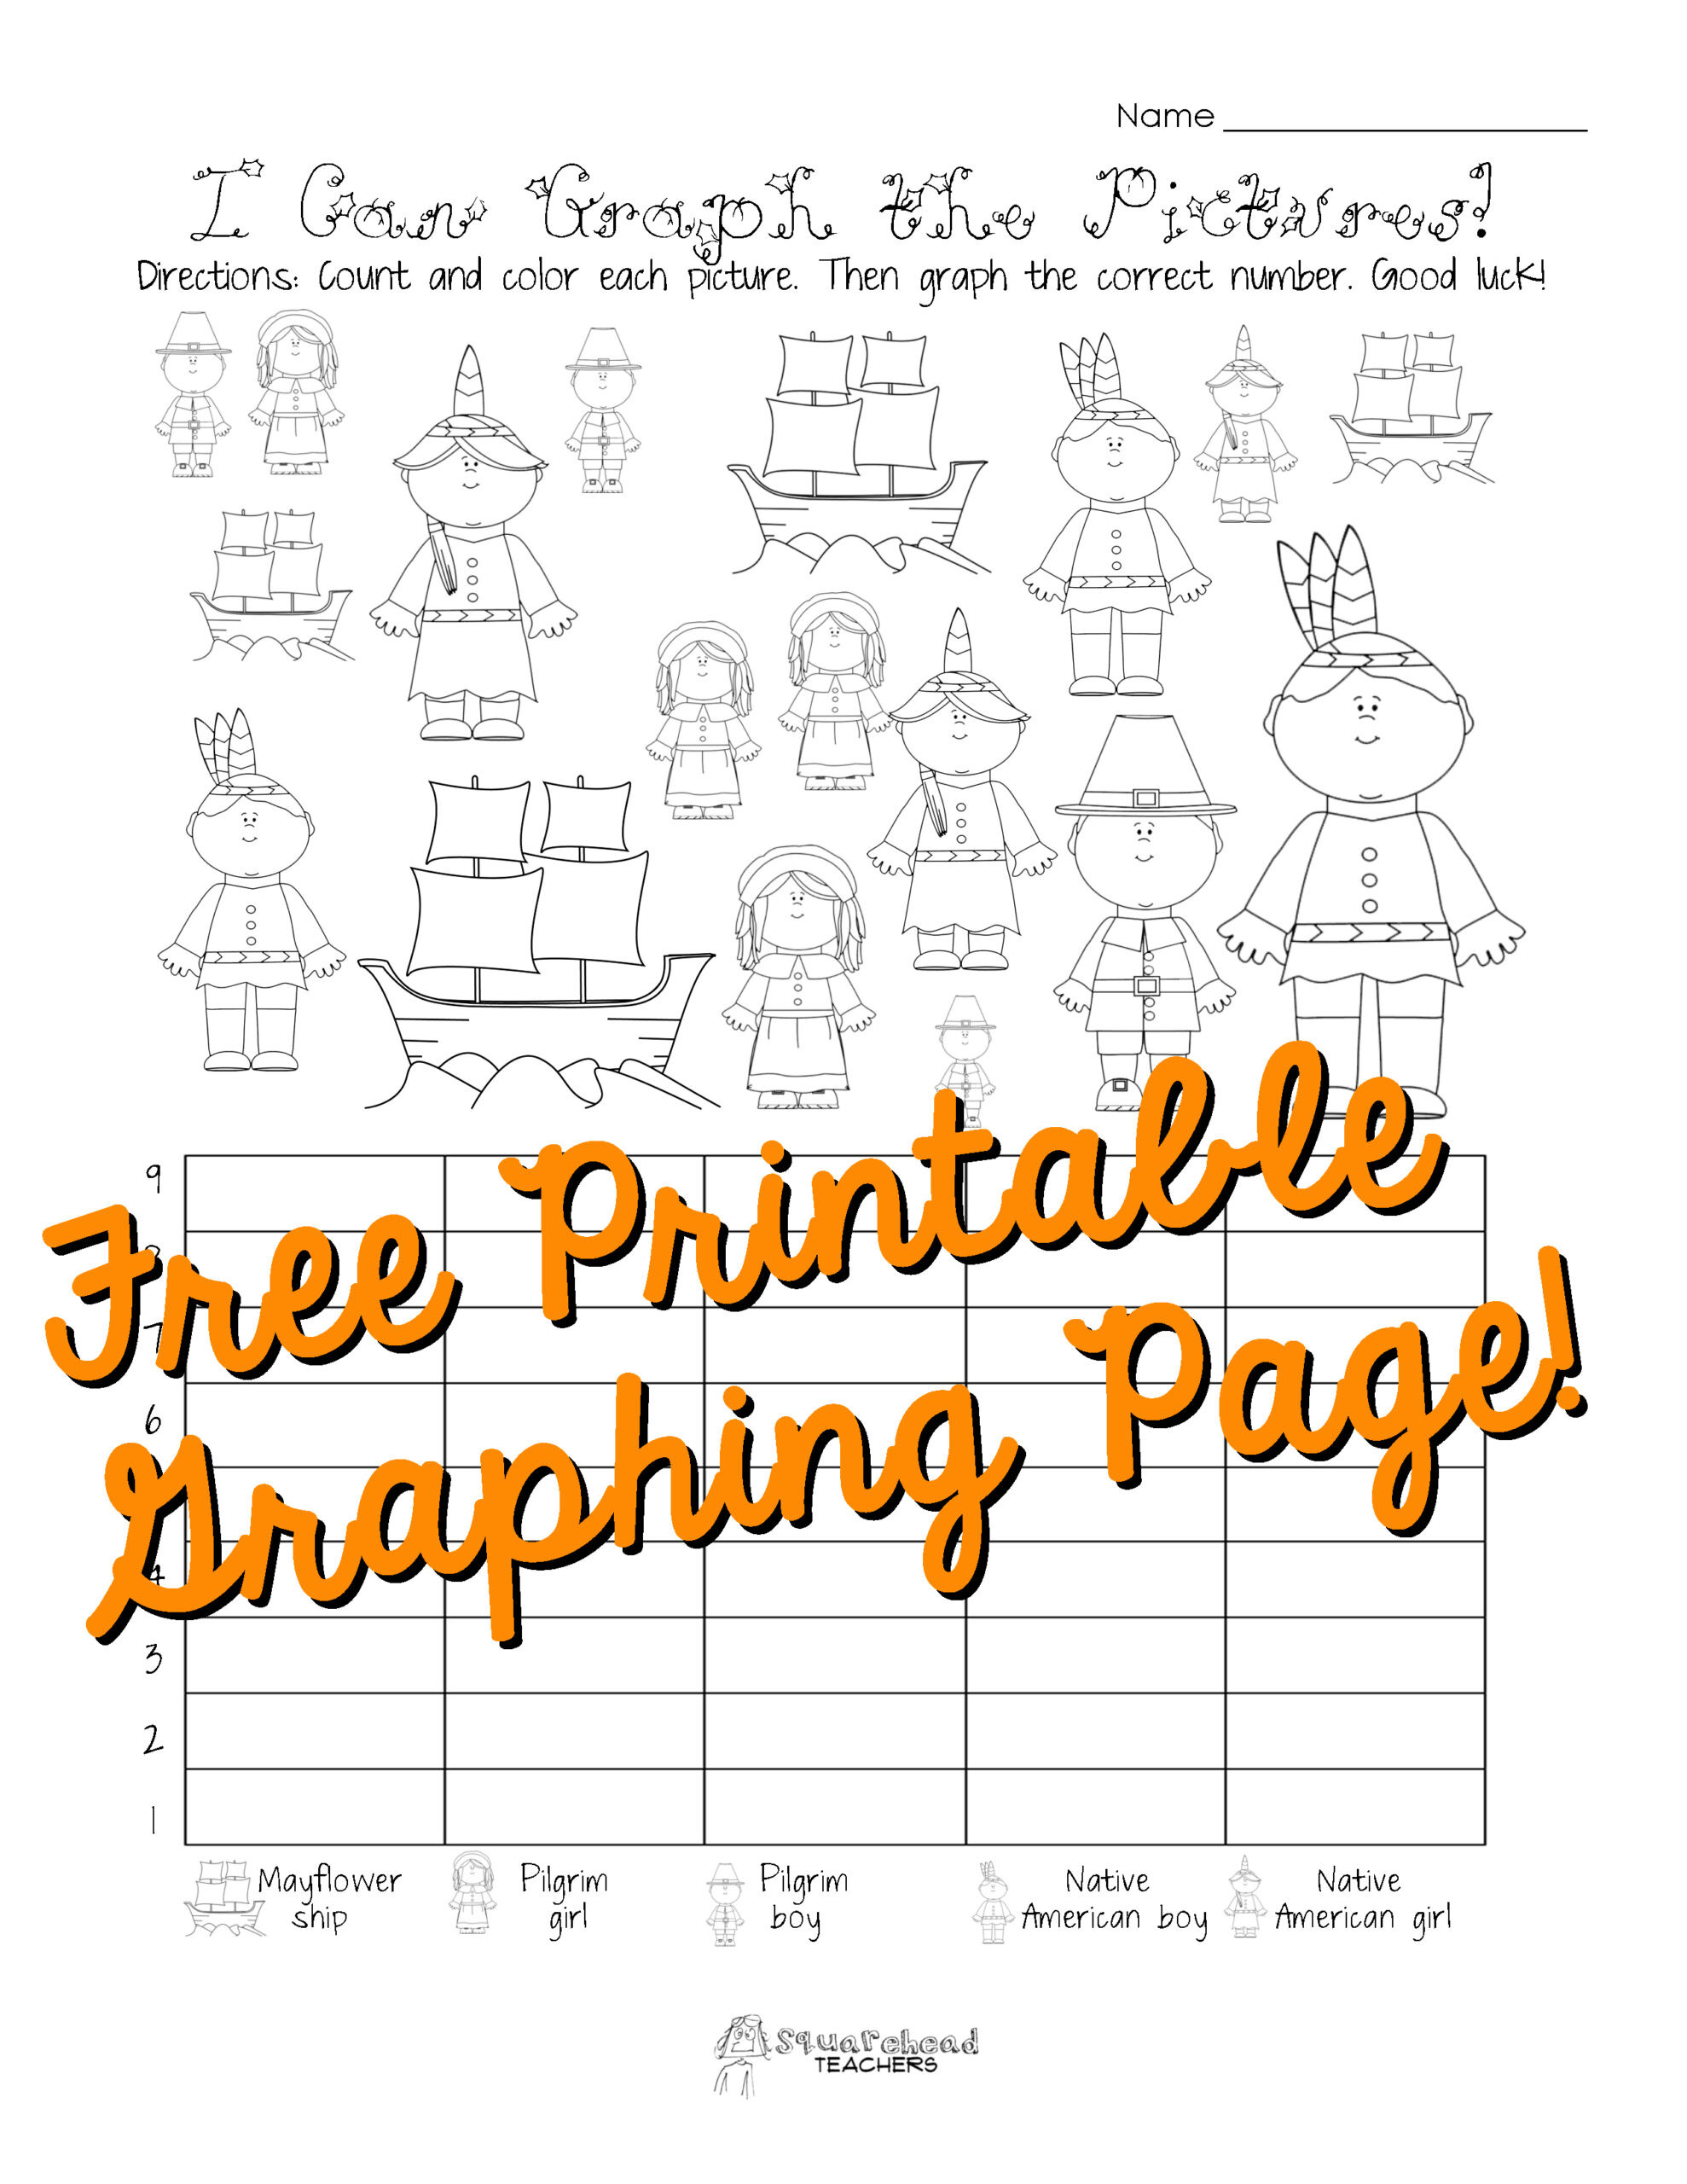 Thanksgiving Math Worksheets First Grade Best Website to Learn Math Free Gingerbread Math Worksheets